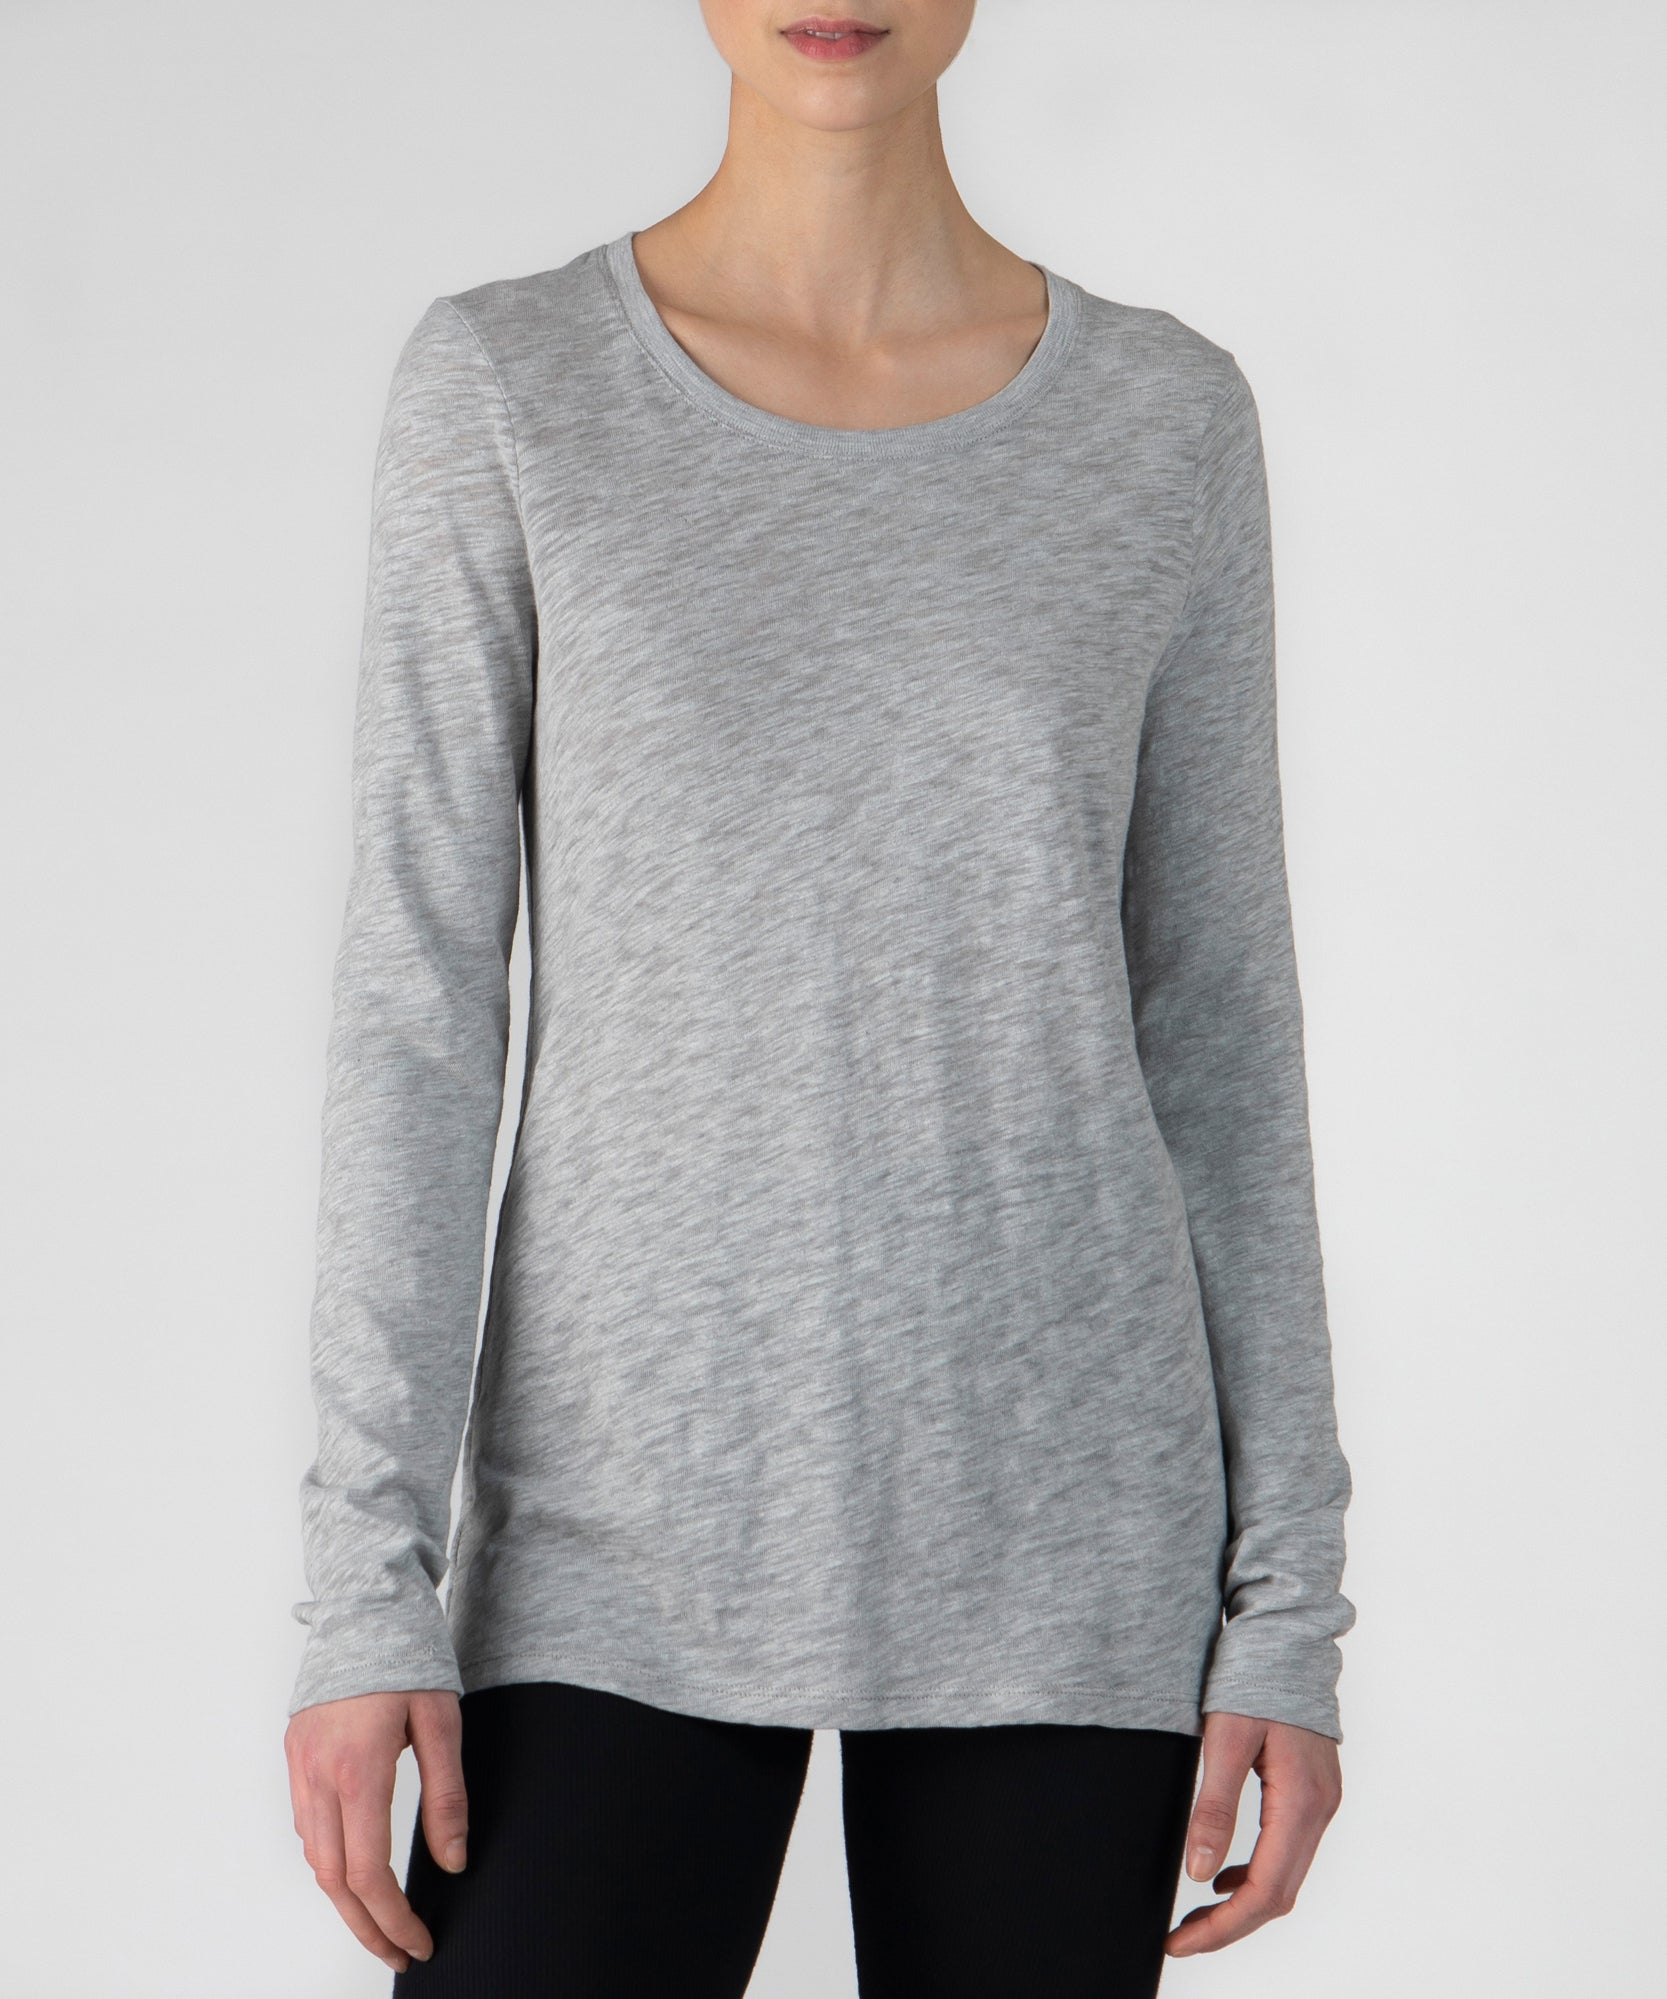 Heather Grey Slub Jersey Long Sleeve Crew Neck Tee - Women's Cotton Long Sleeve T-shirt by ATM Anthony Thomas Melillo